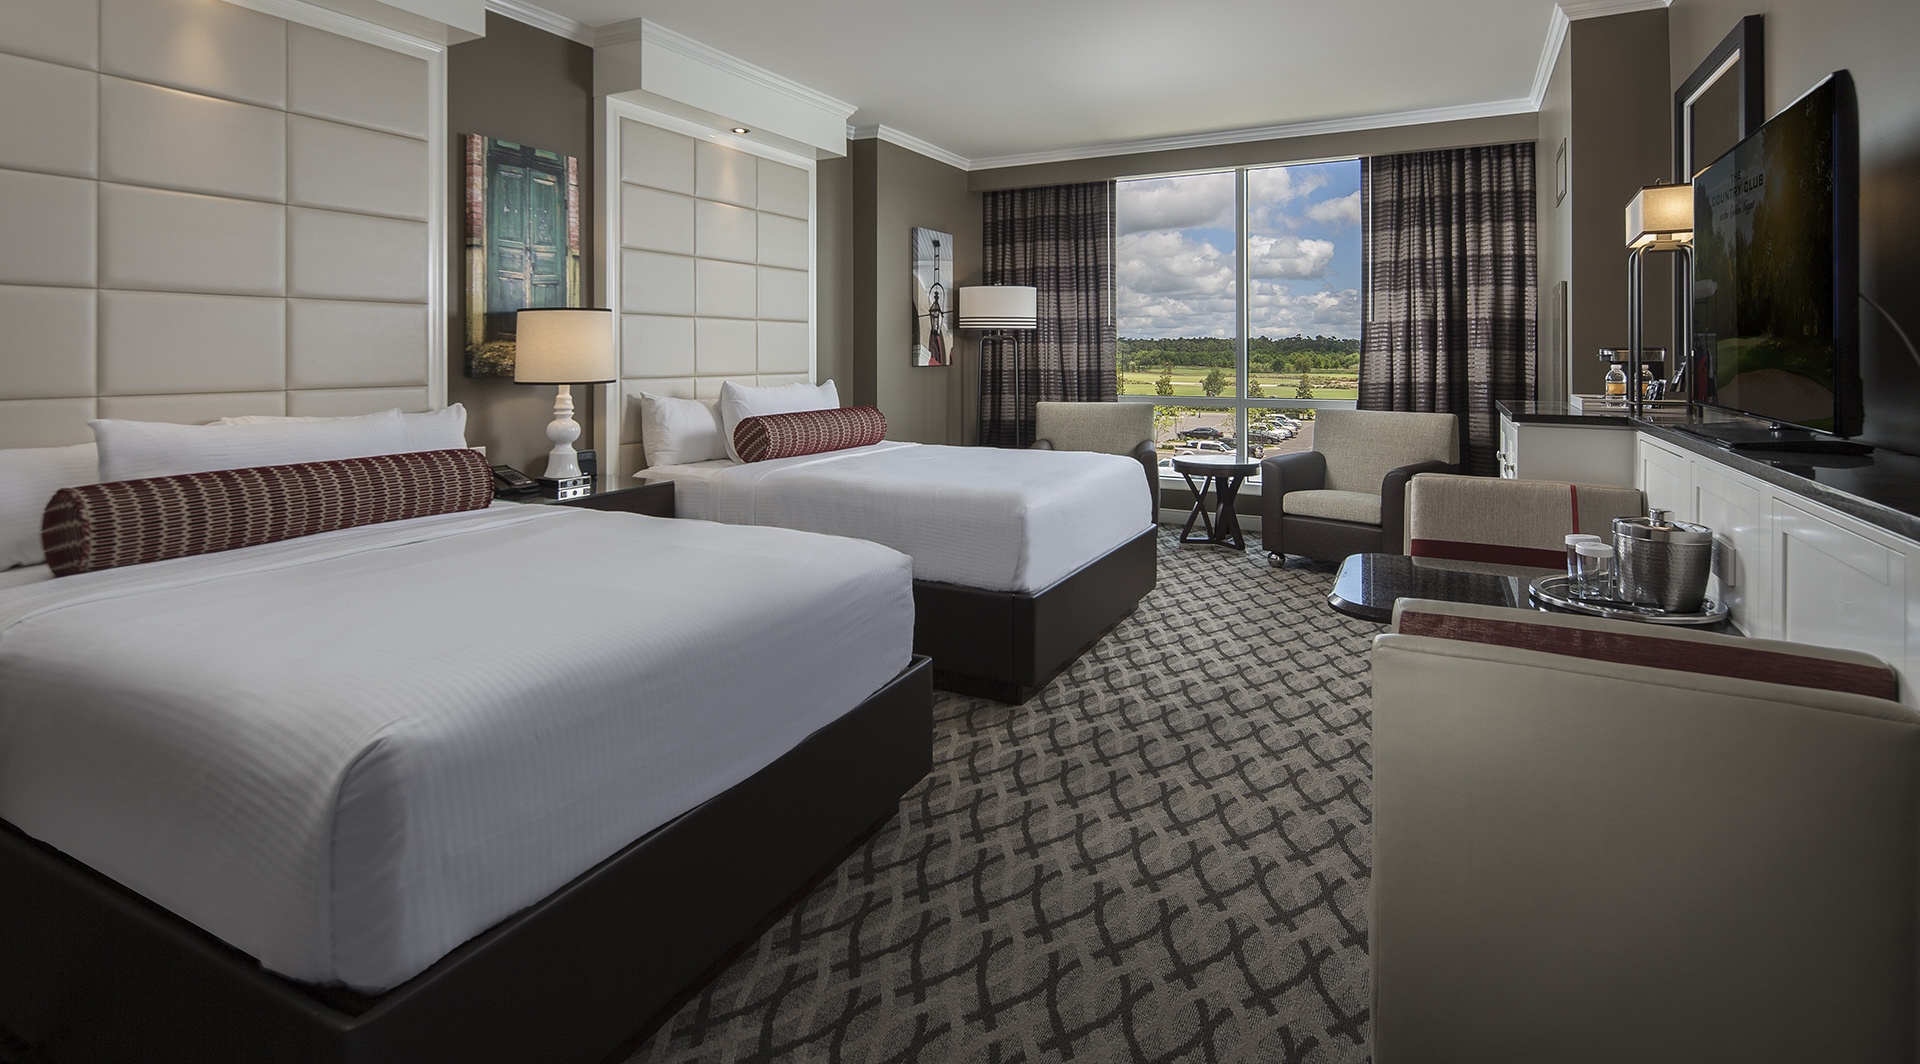 Hospitality Architecture Interior Design Golden Nugget Lake Charles Rush Tower Double Queen Room